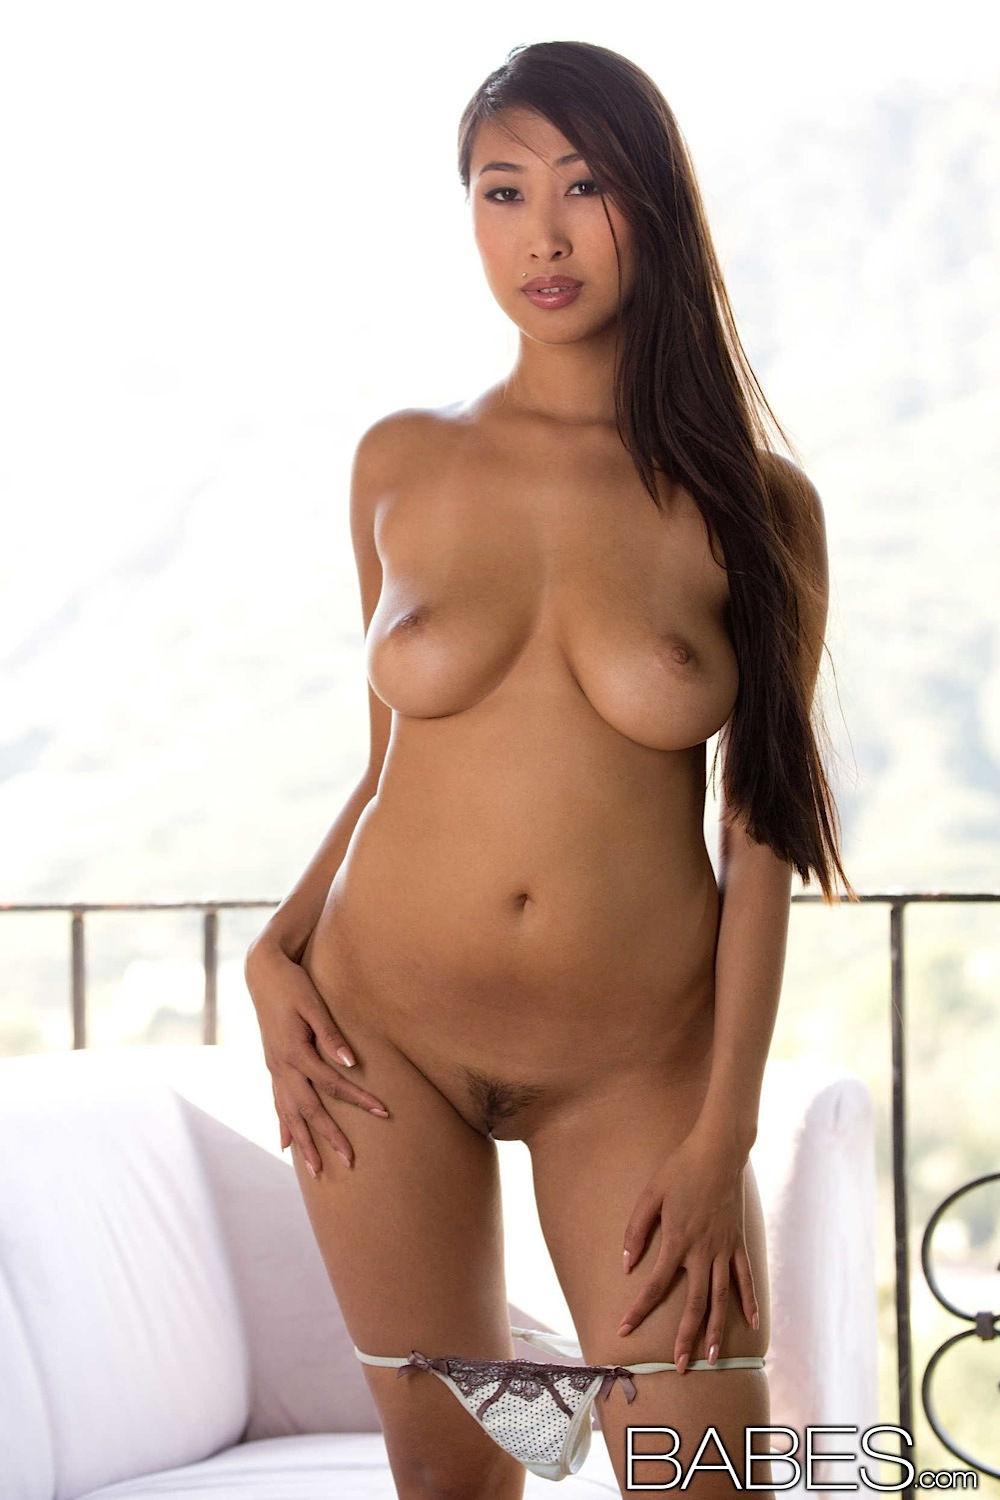 Idea Sharon lee nude magnificent idea